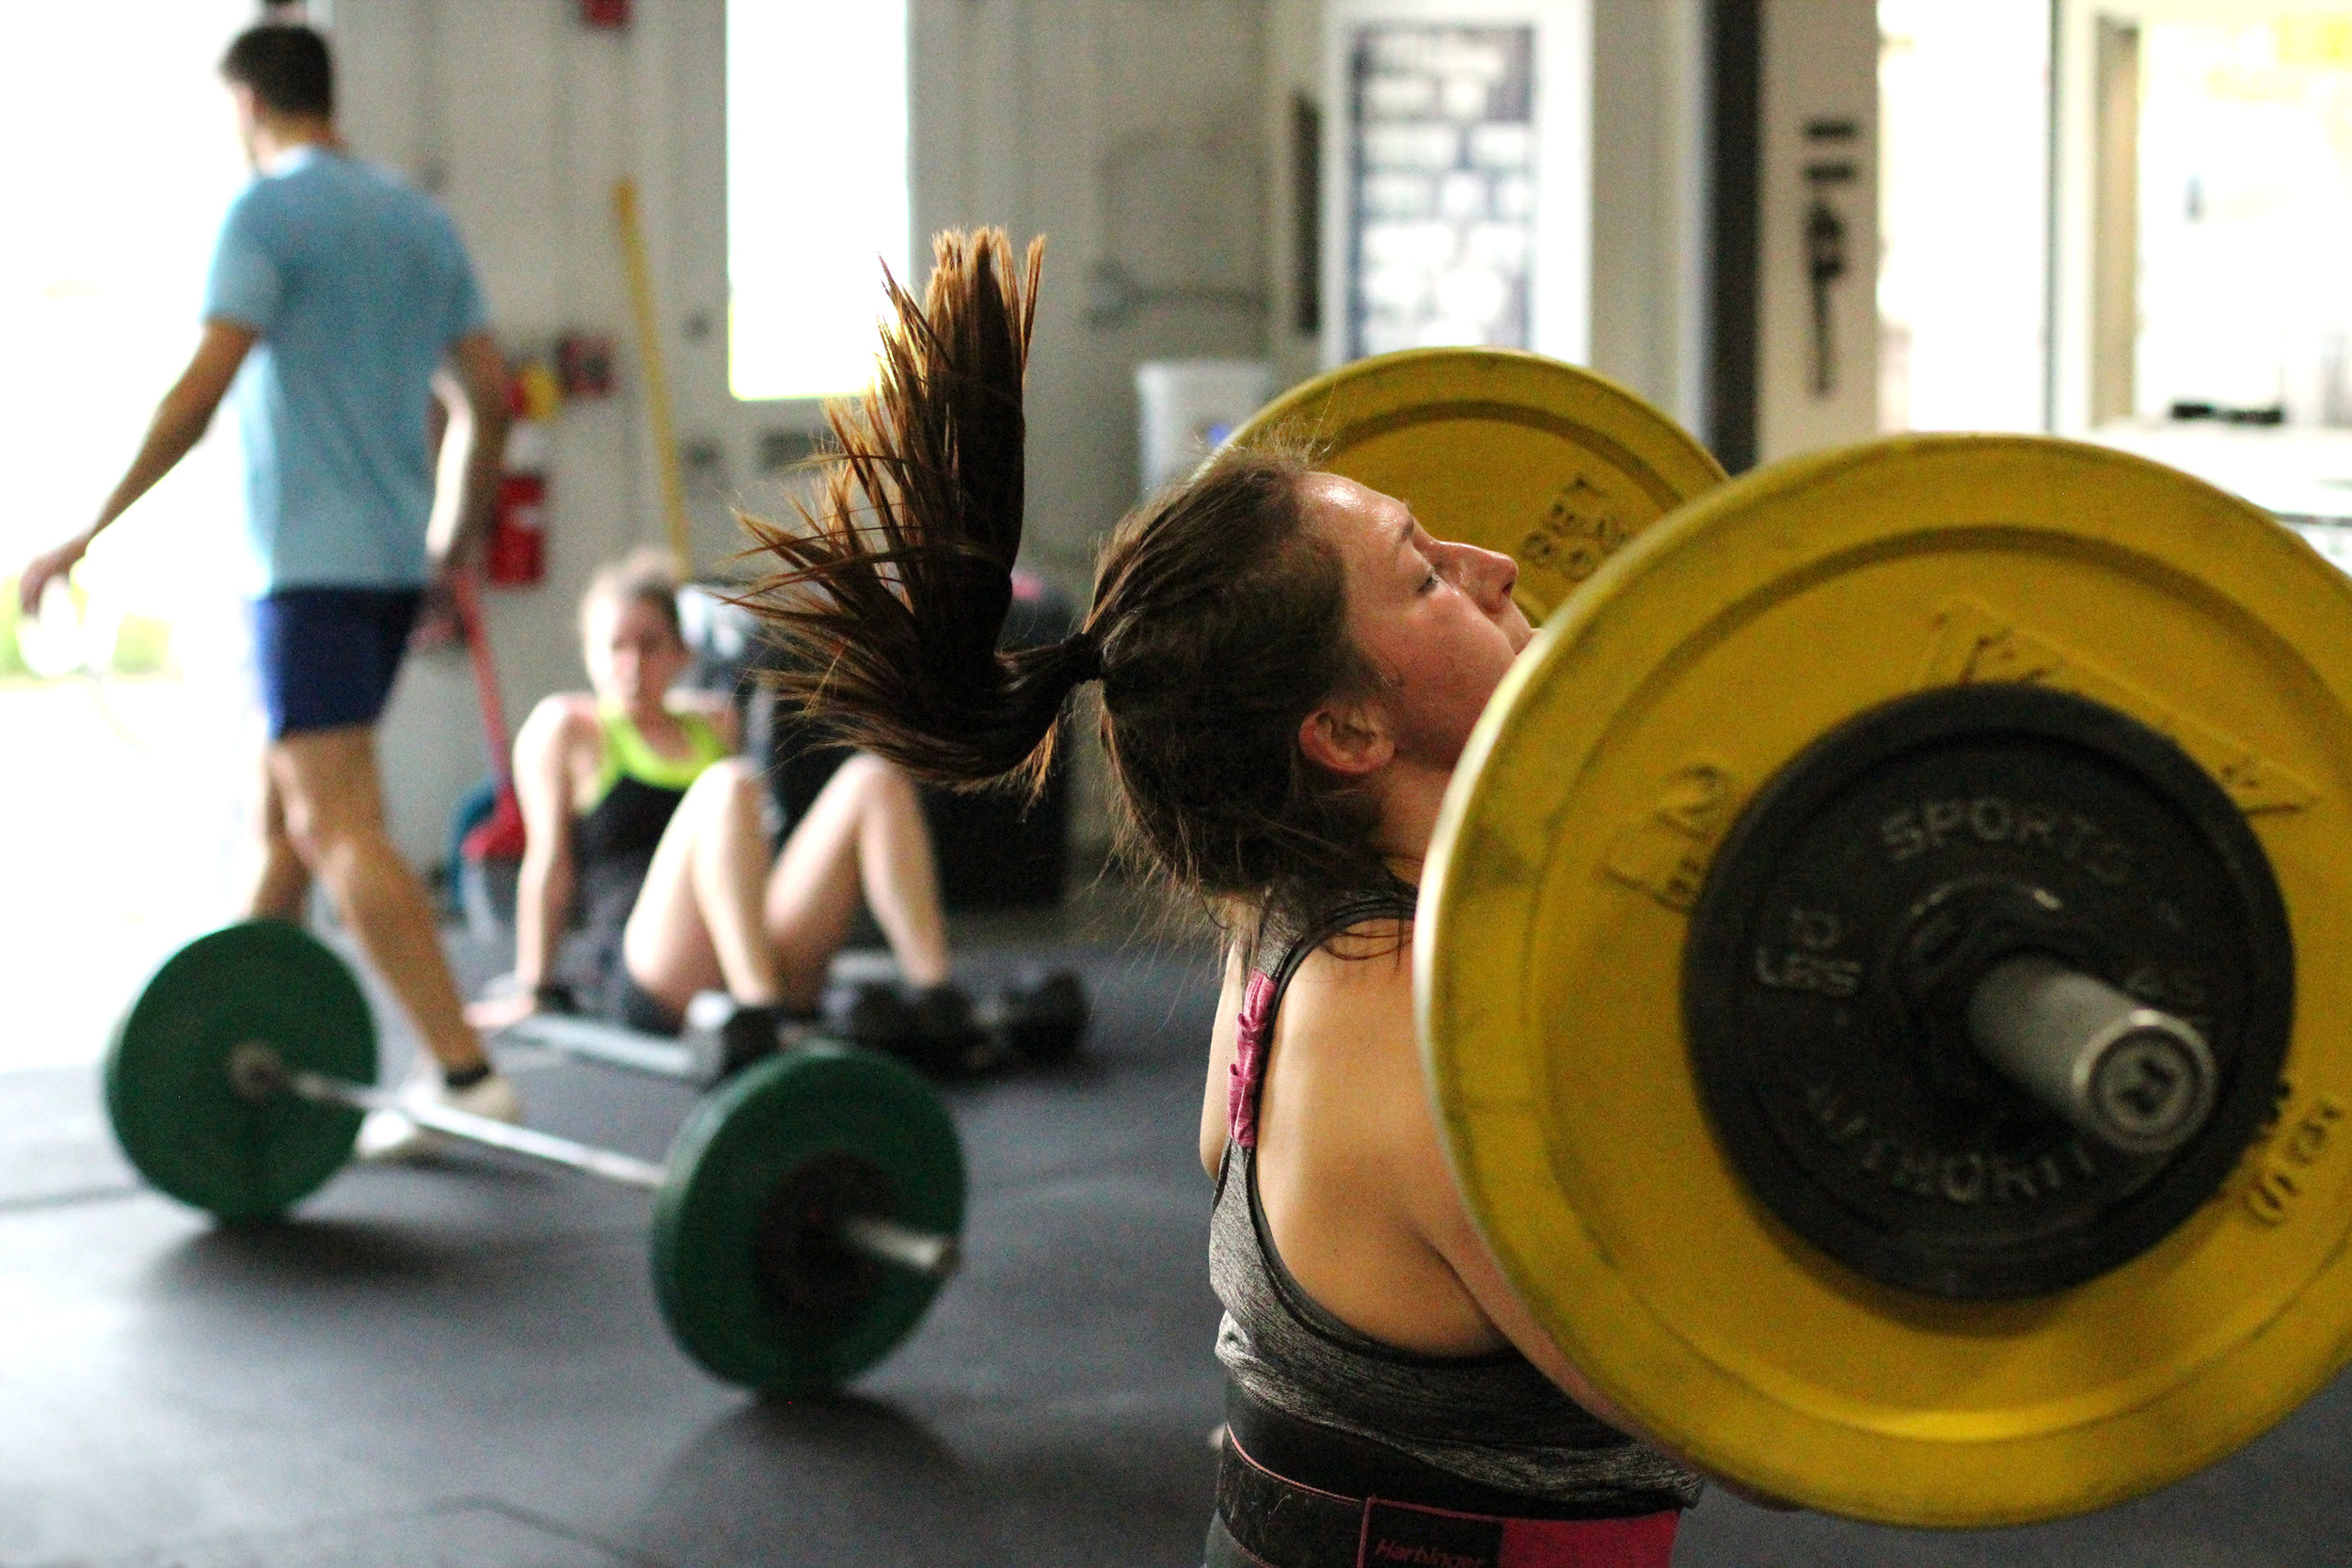 Max effort clean: when even your hair is working hard! Outstanding! PVCF athlete, Julia Boyle!